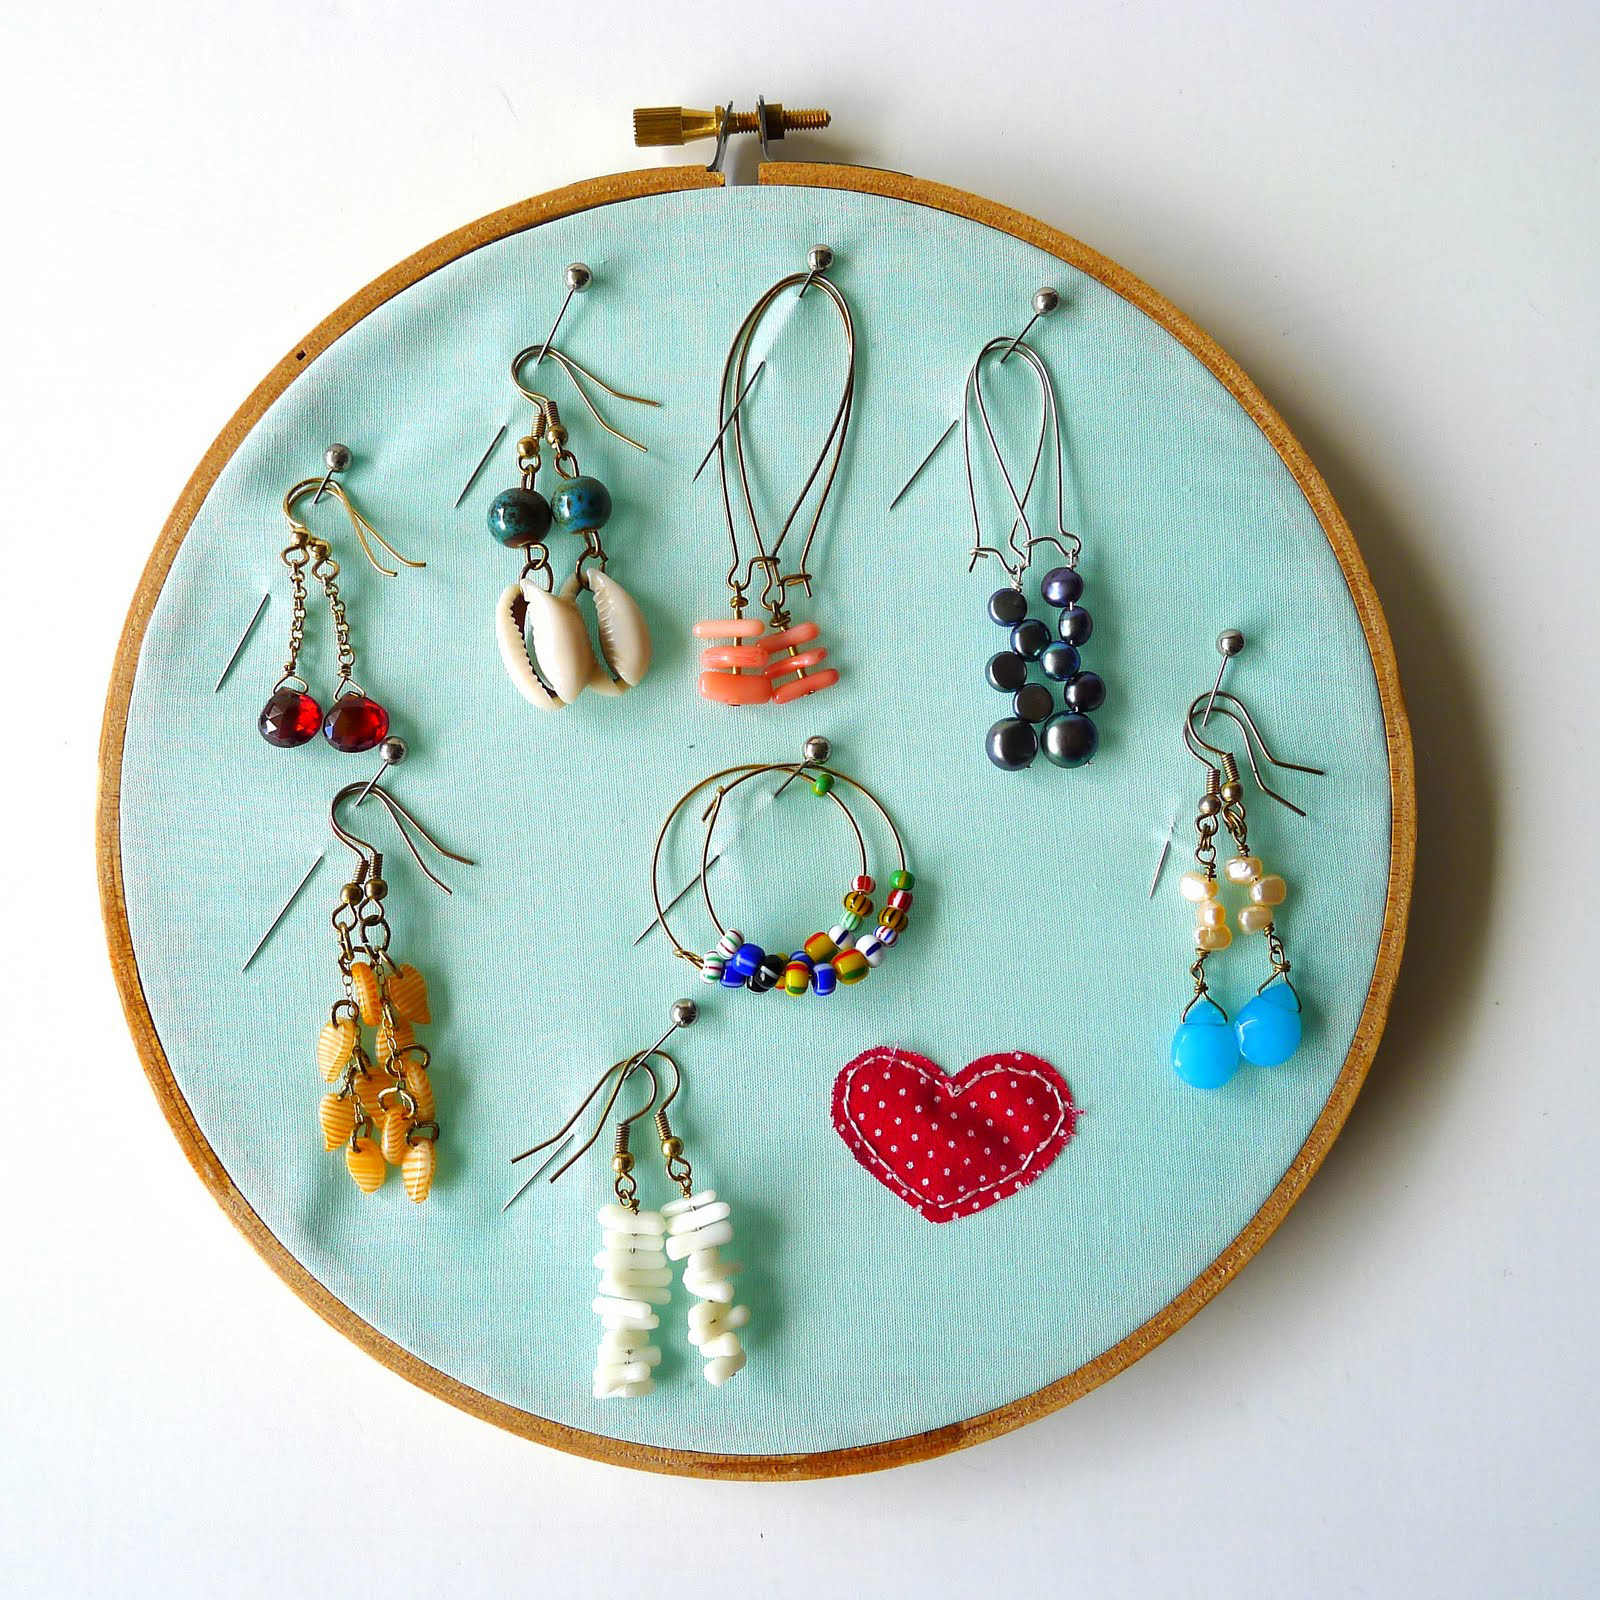 Minimalist Teal Pin Based Wall Hanging Earring Holder